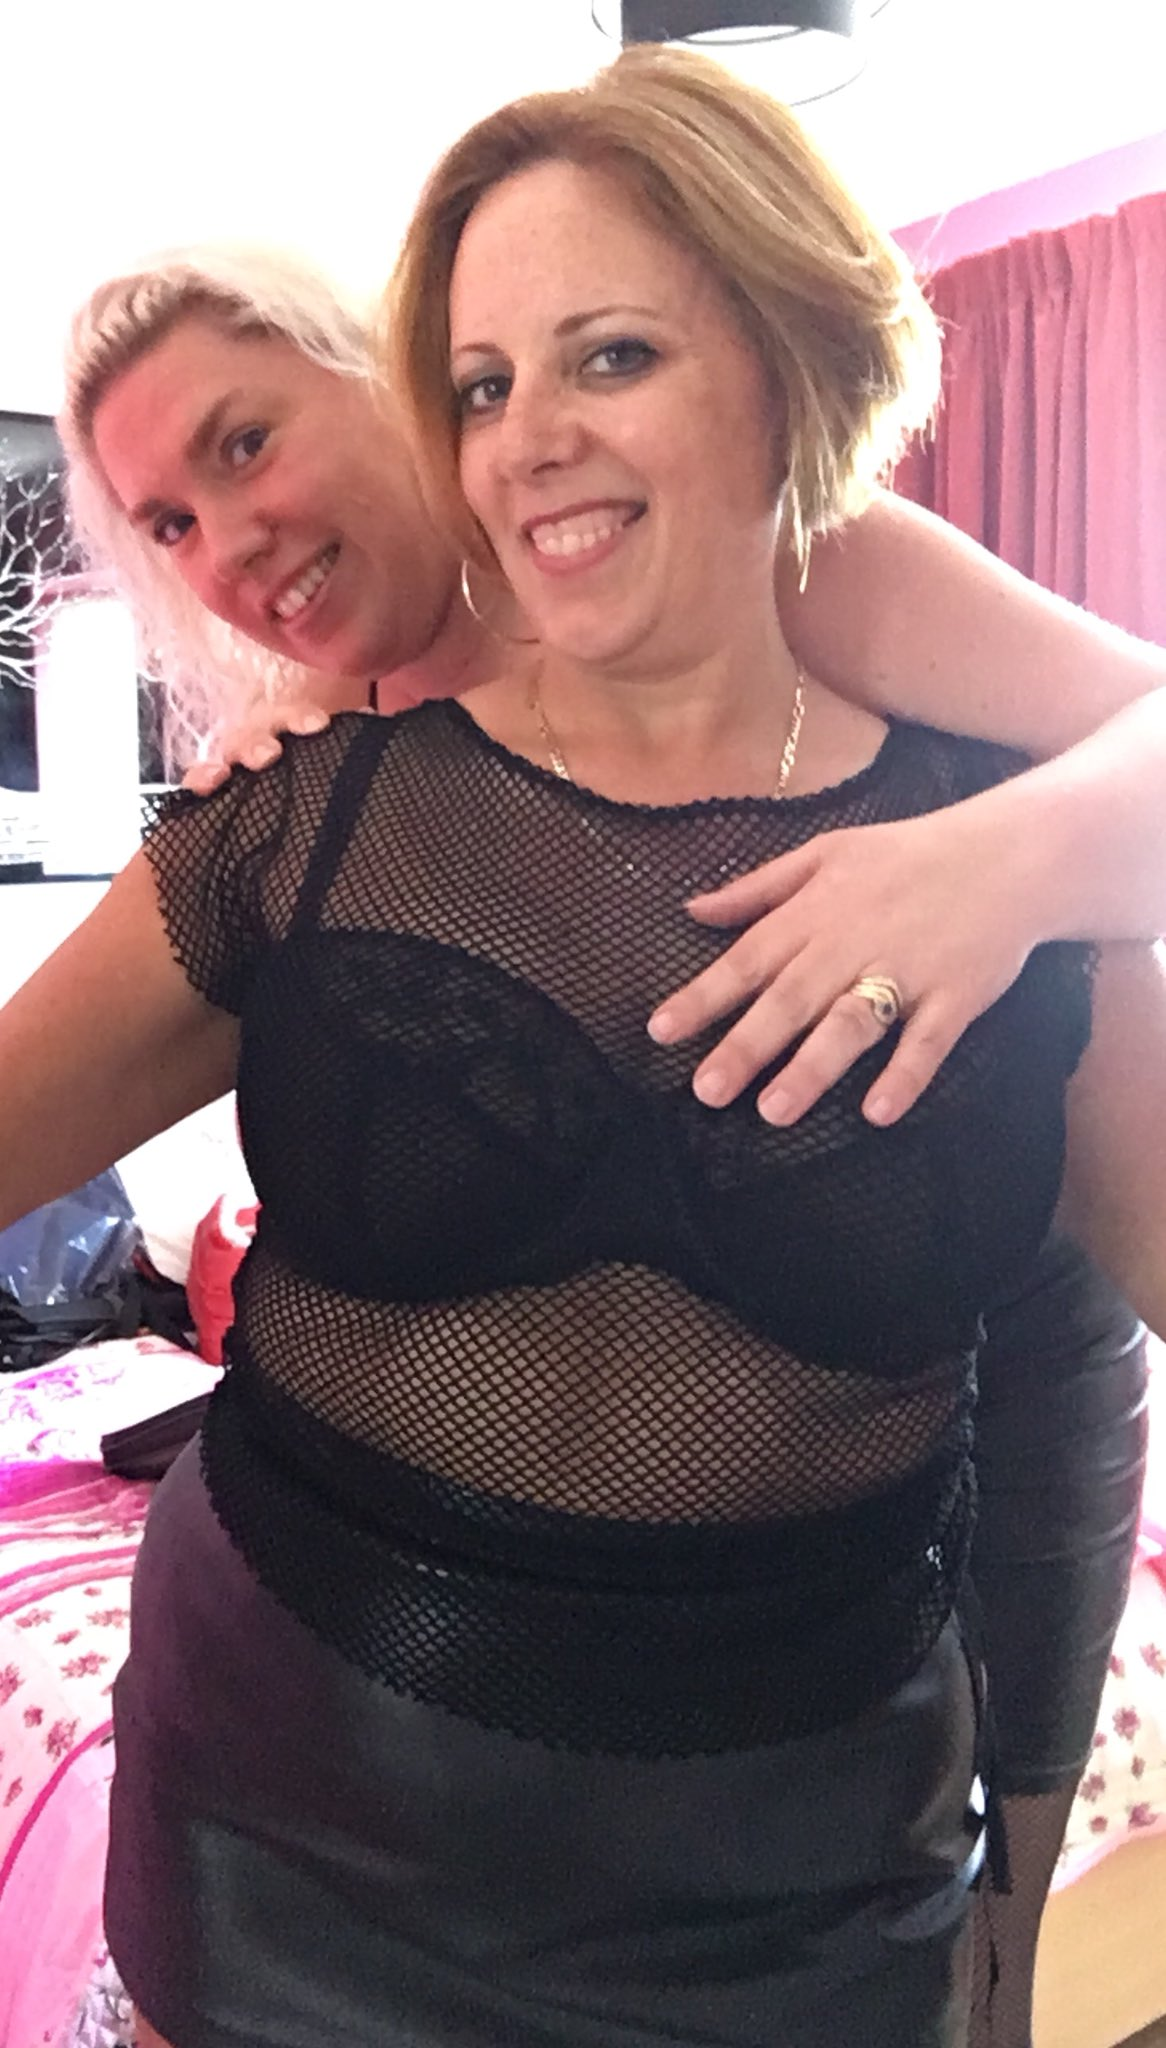 Curvy Claire on Twitter: Last morning of fun with Barby…